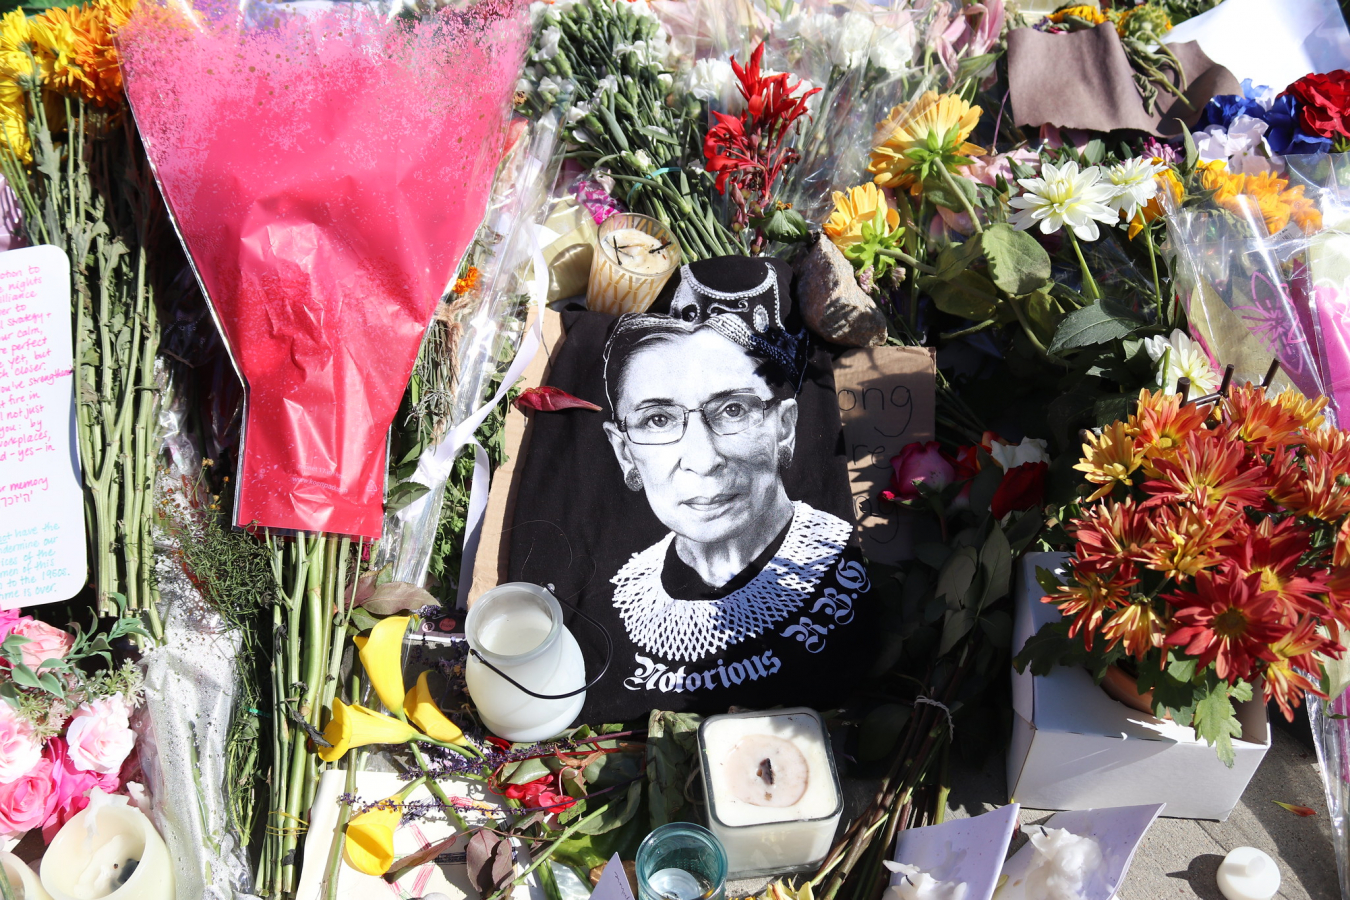 Ruth Bader Ginsburg Public Memorial, Supreme Court 21 September 2020